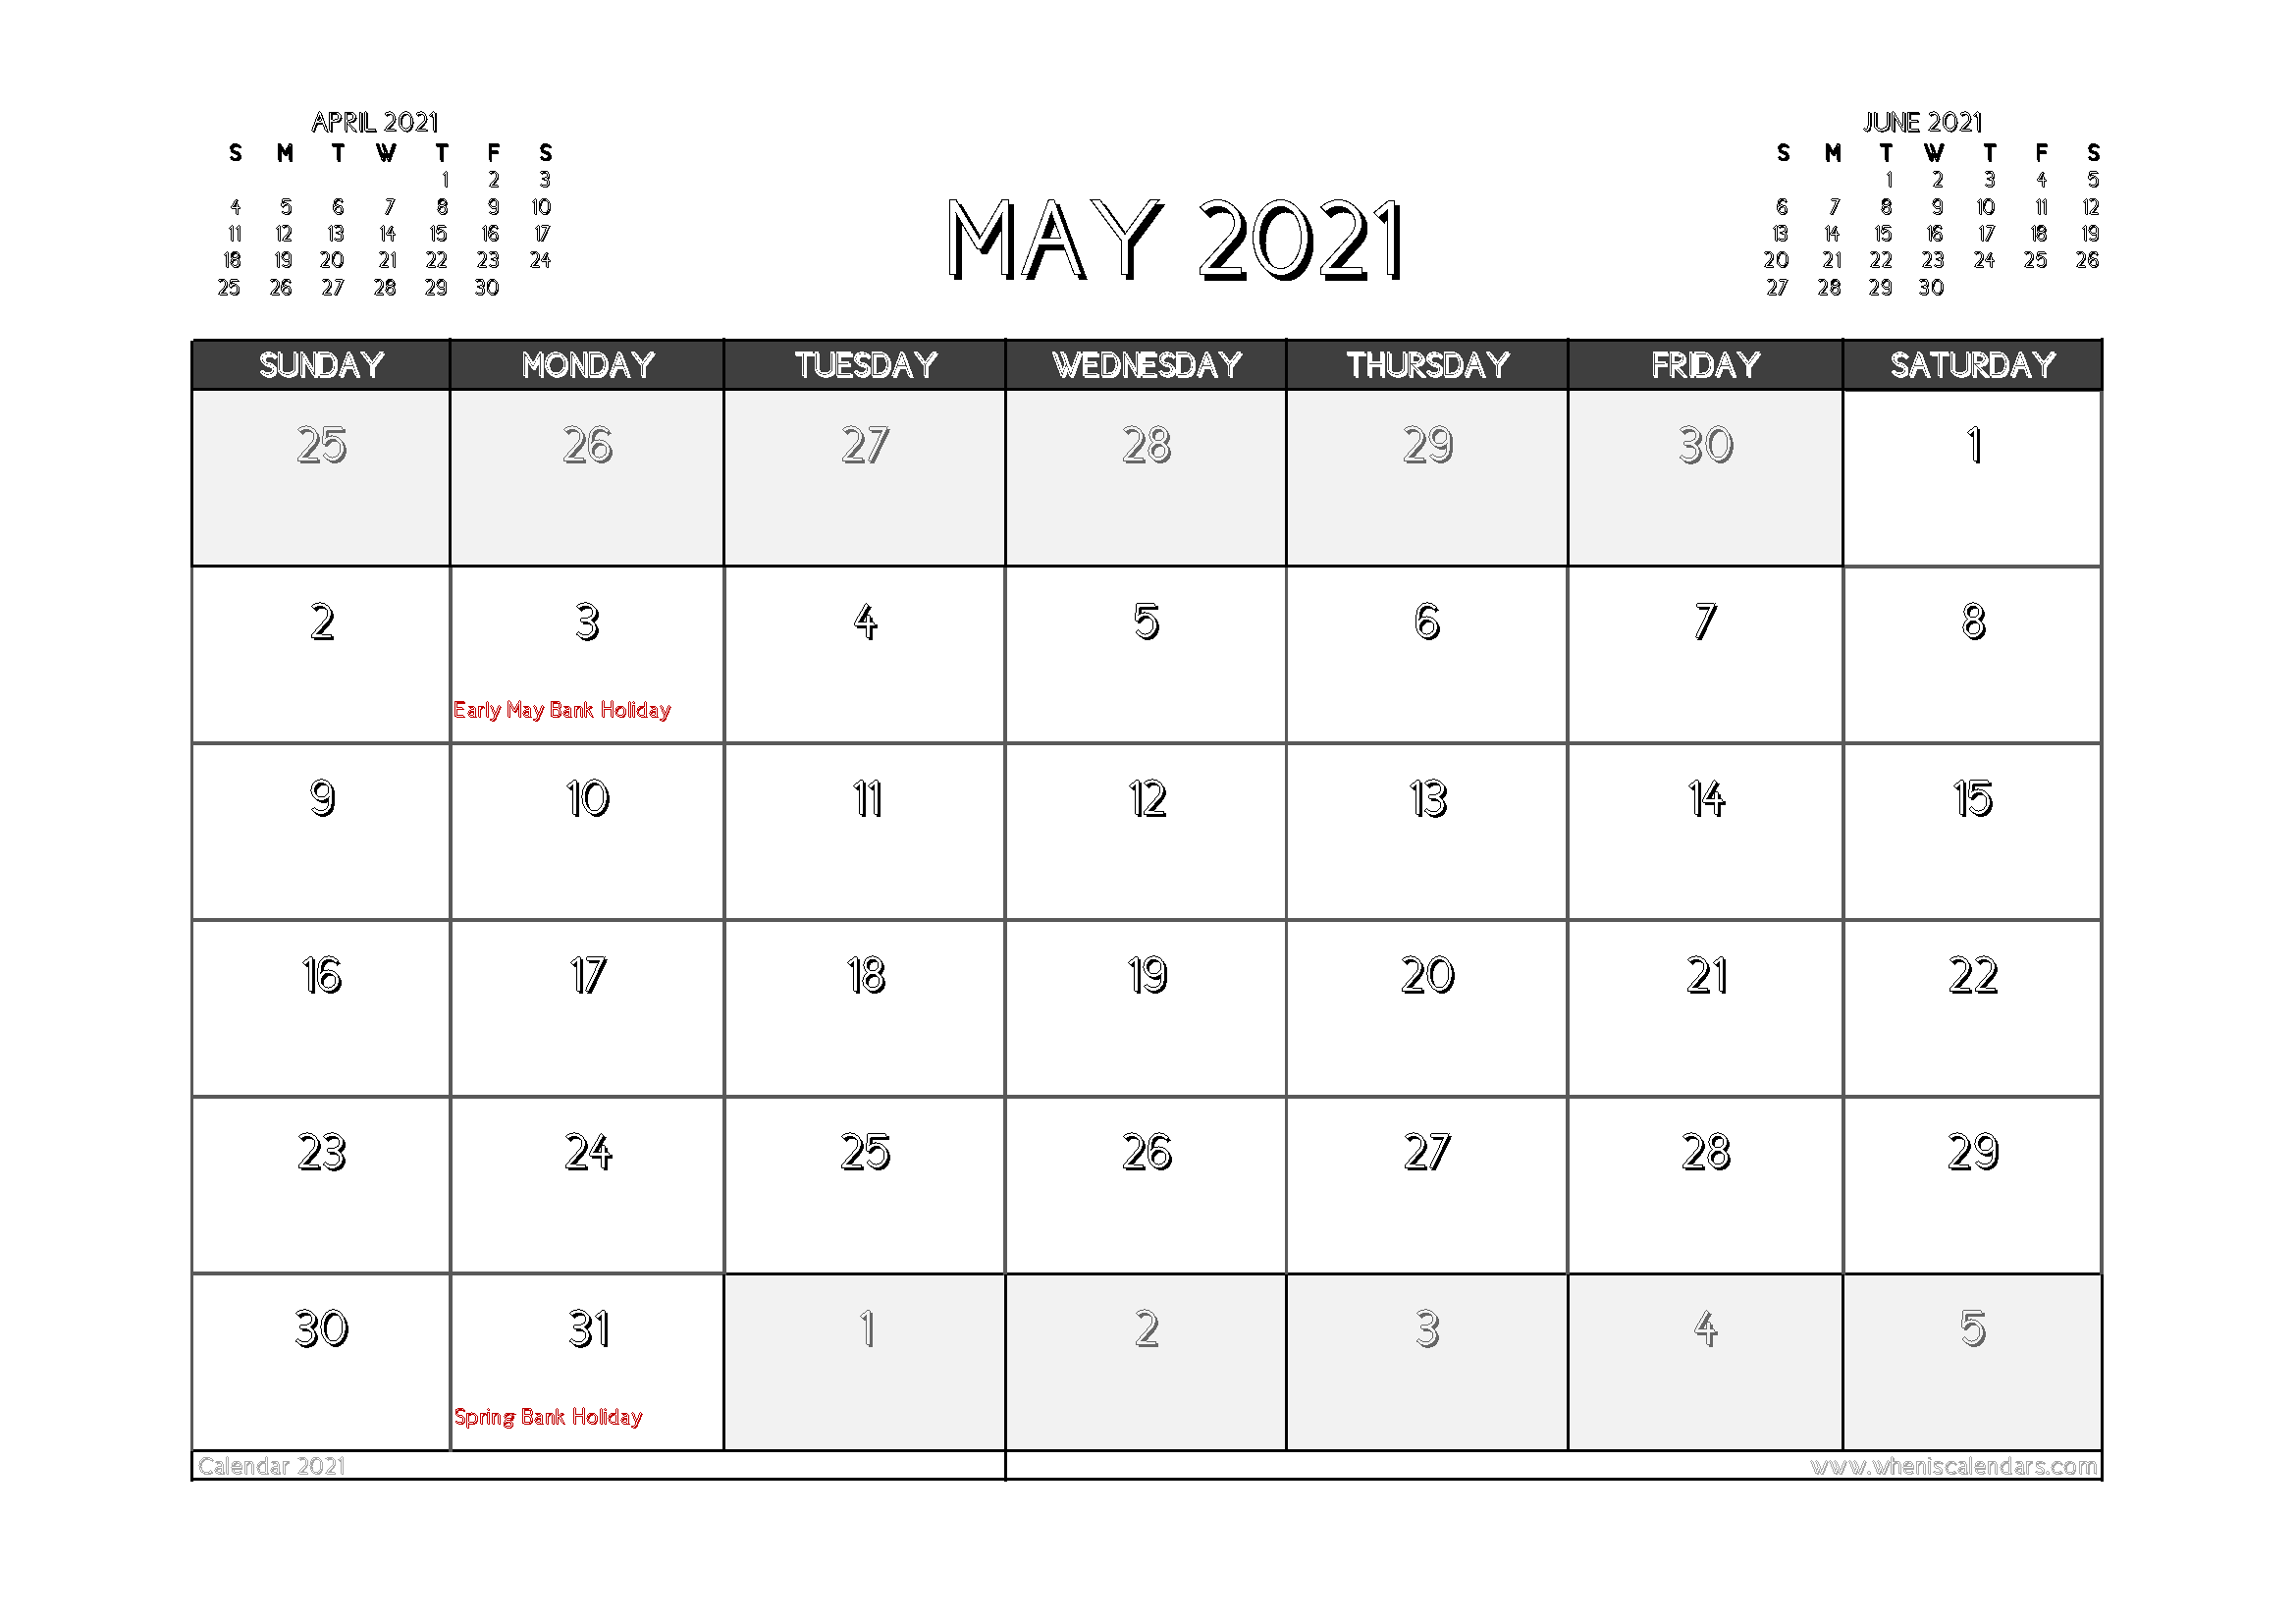 May 2021 Calendar Uk Printable In 2020 Calendar Uk 2021 Calendar Printable Calendar Template